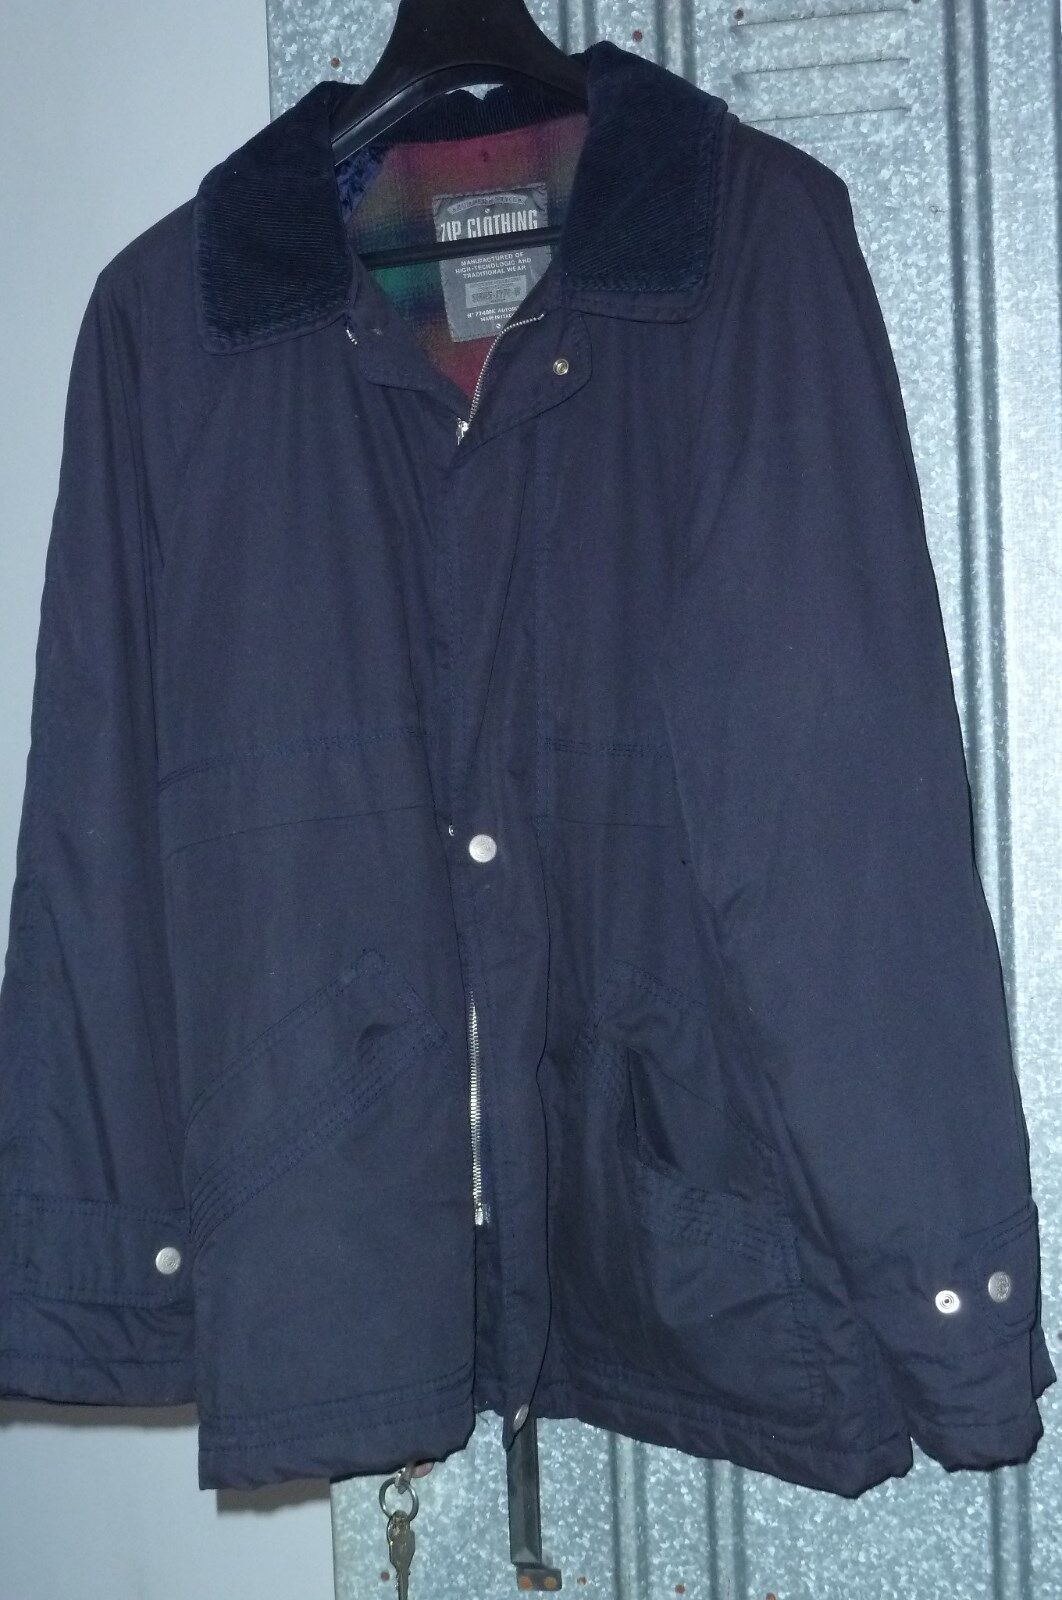 GIACCONE men ZIP CLOTHING INDUSTRIES - LARGE - MADE IN ITALY